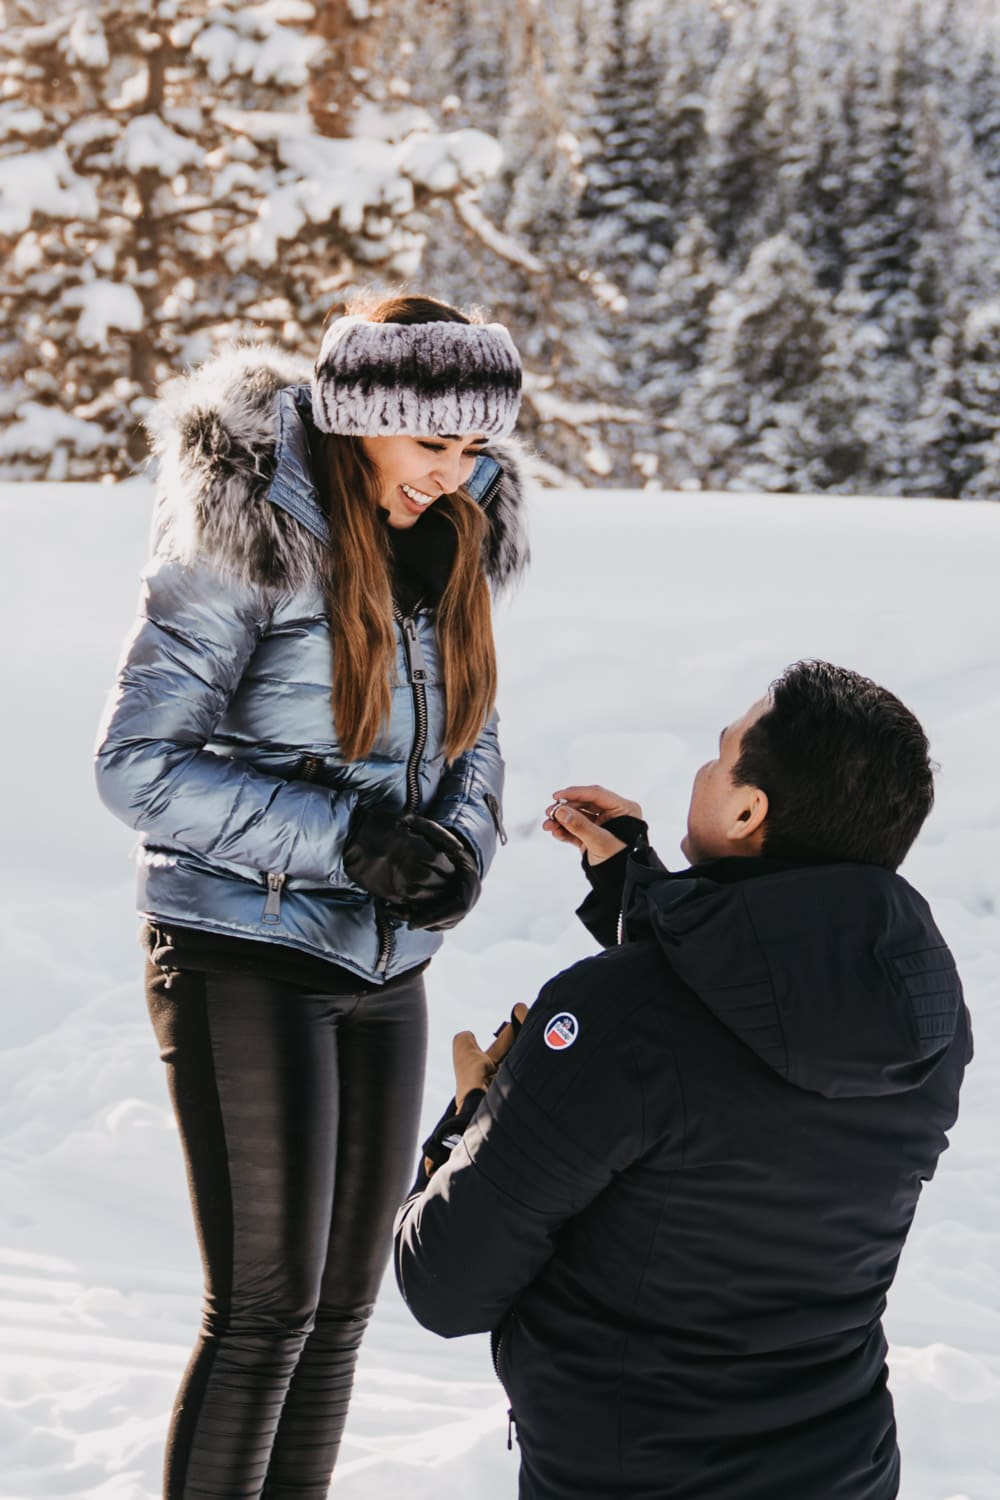 Julio gets down on one knee in the snow to ask his girlfriend to marry him for this sleigh ride proposal in Breckenridge